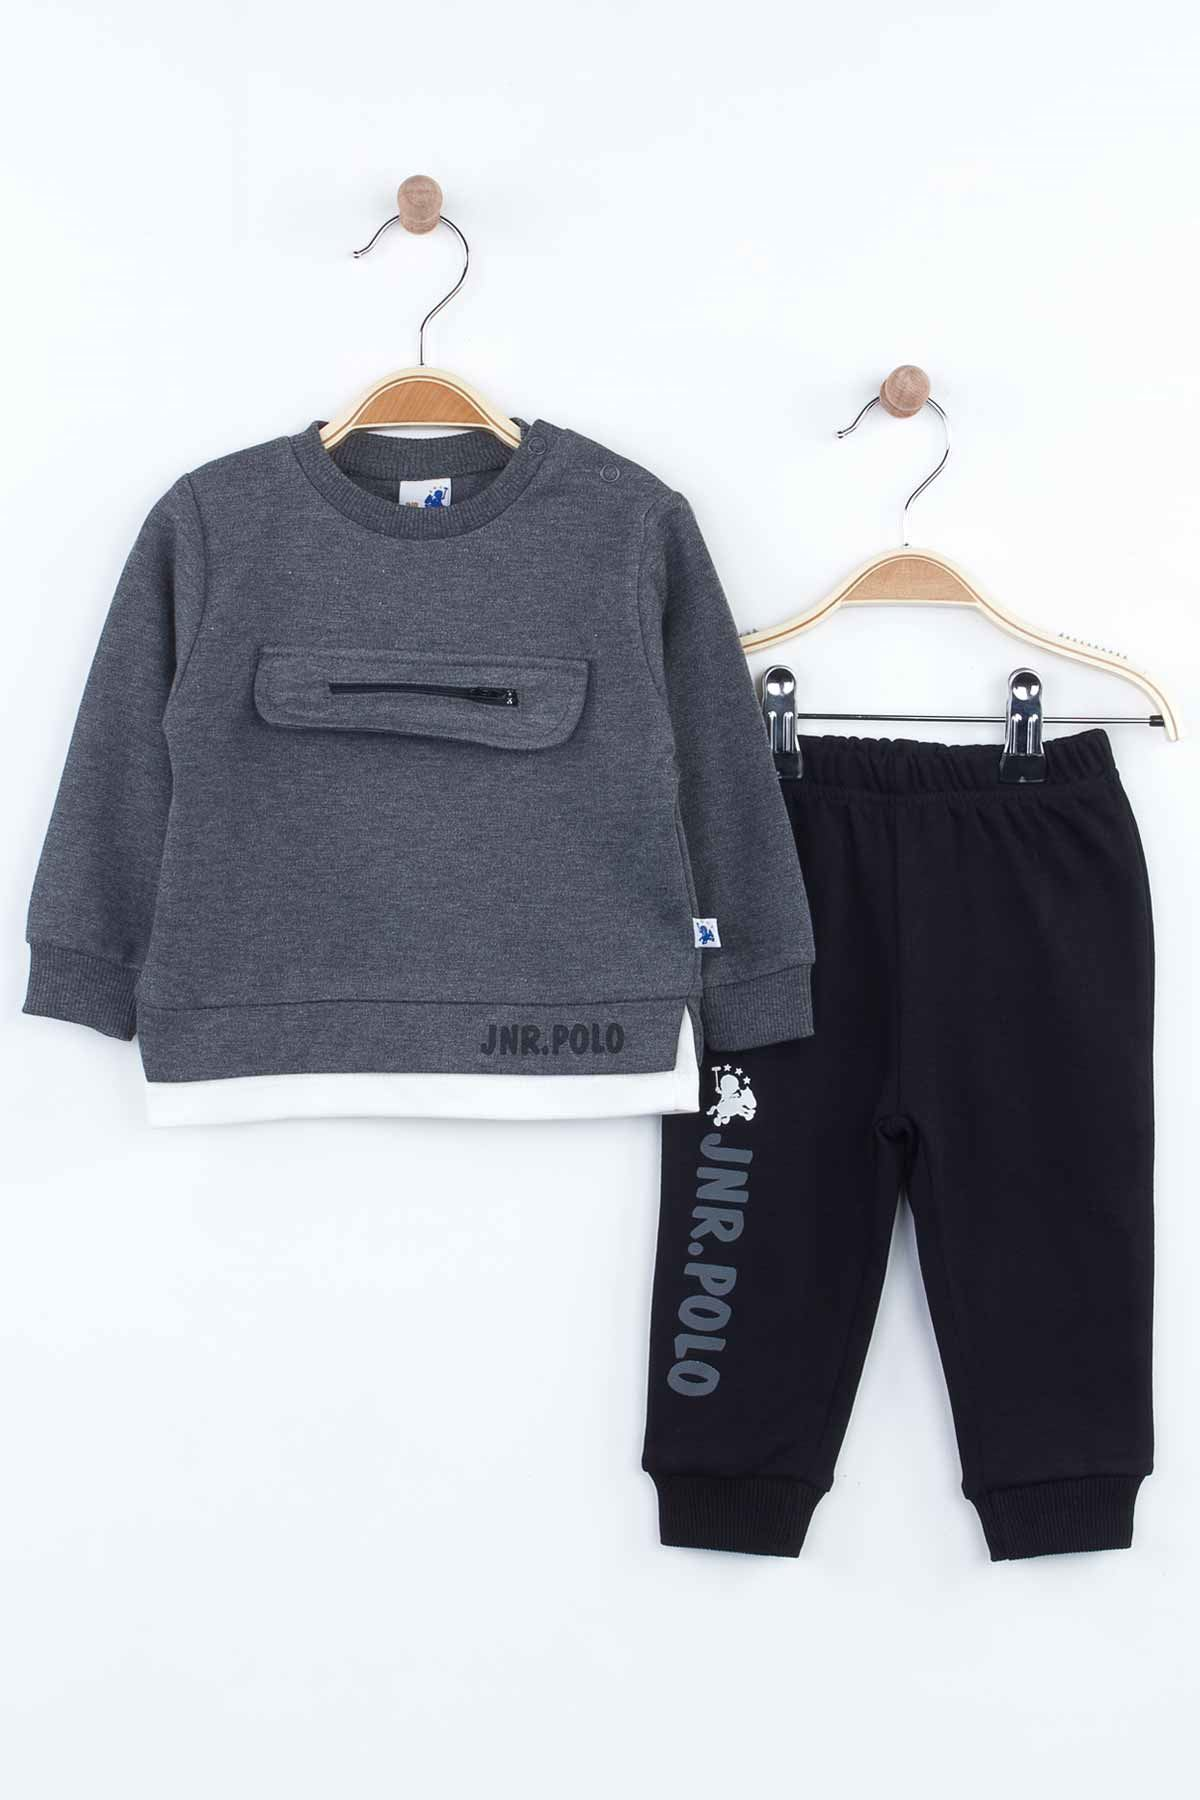 Smoked Baby Boy 2 Piece Suit Bottom Tracksuit Top Sweater Spring Seasonal Cottons Home Use Comfortable Babies Boy Models